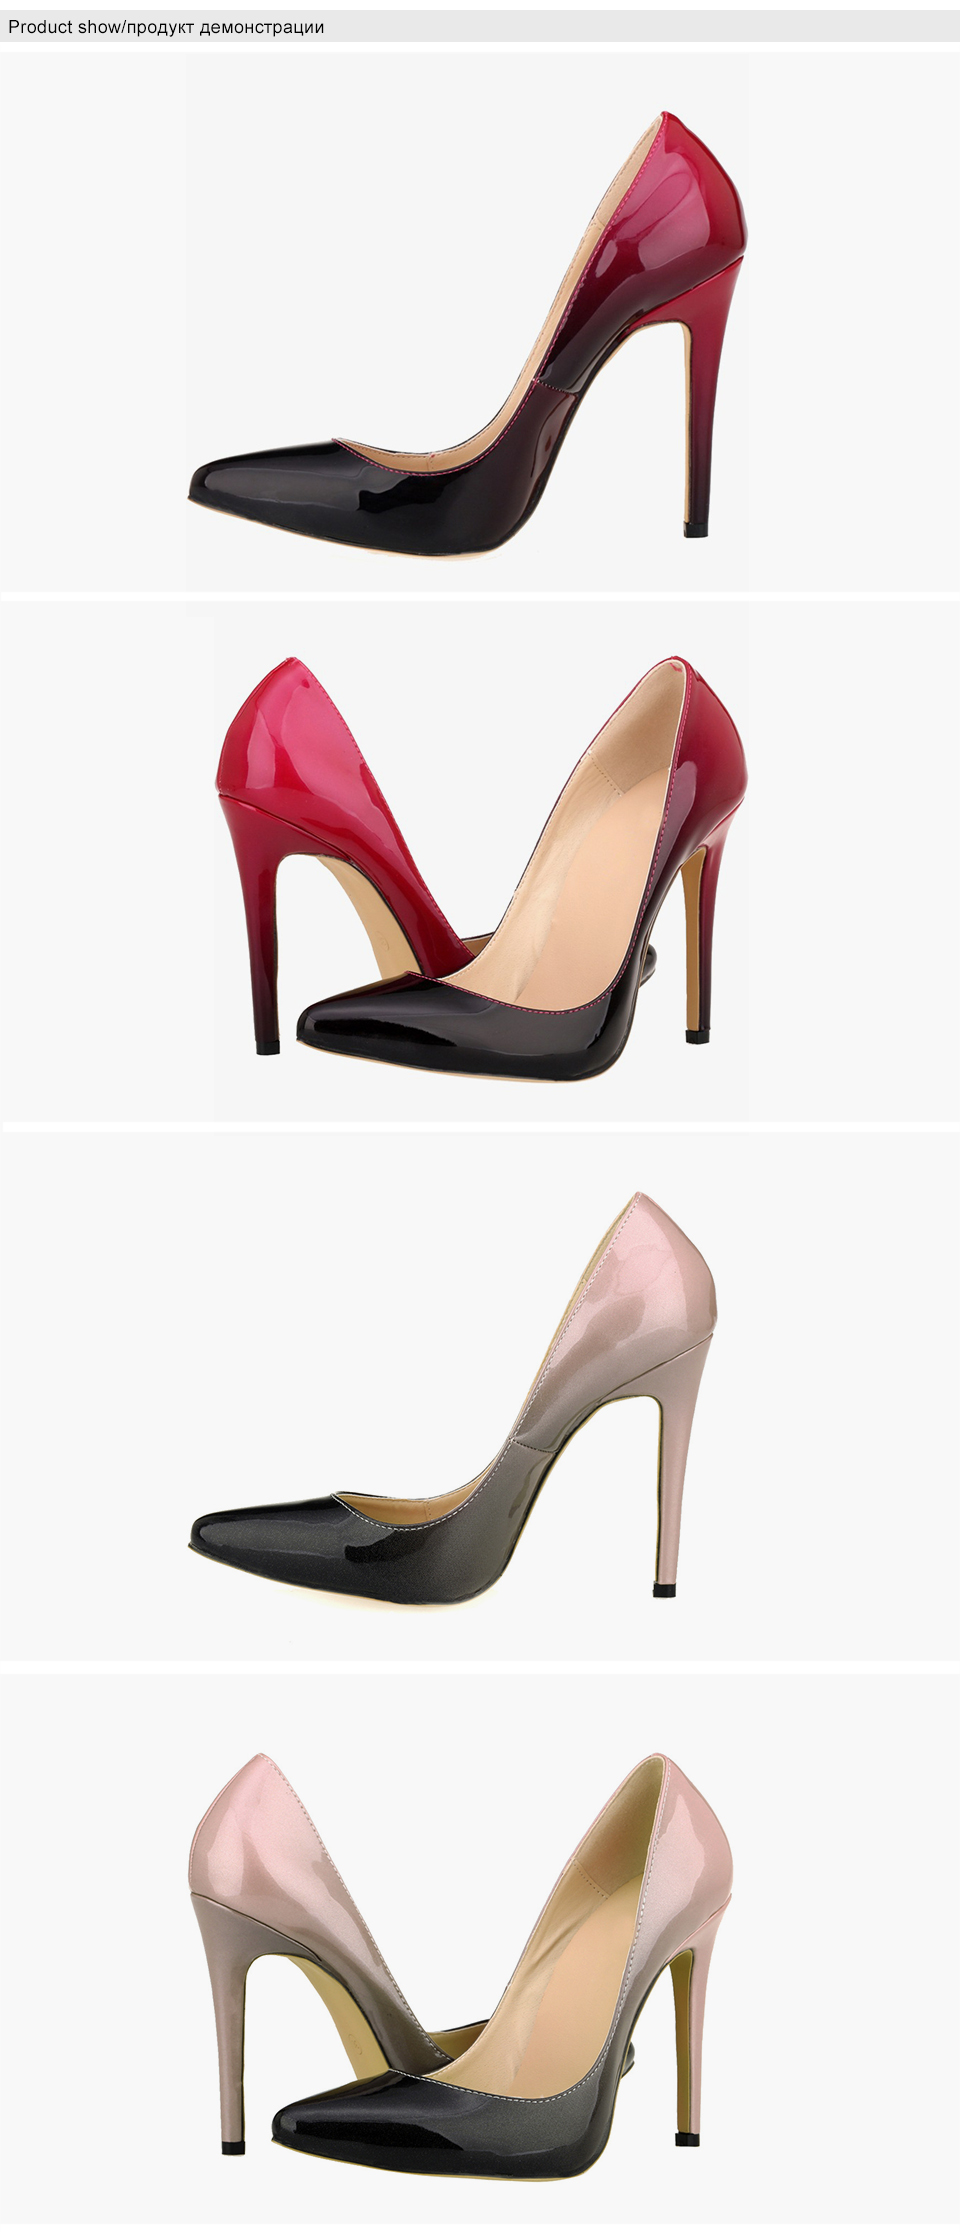 3 women shoes